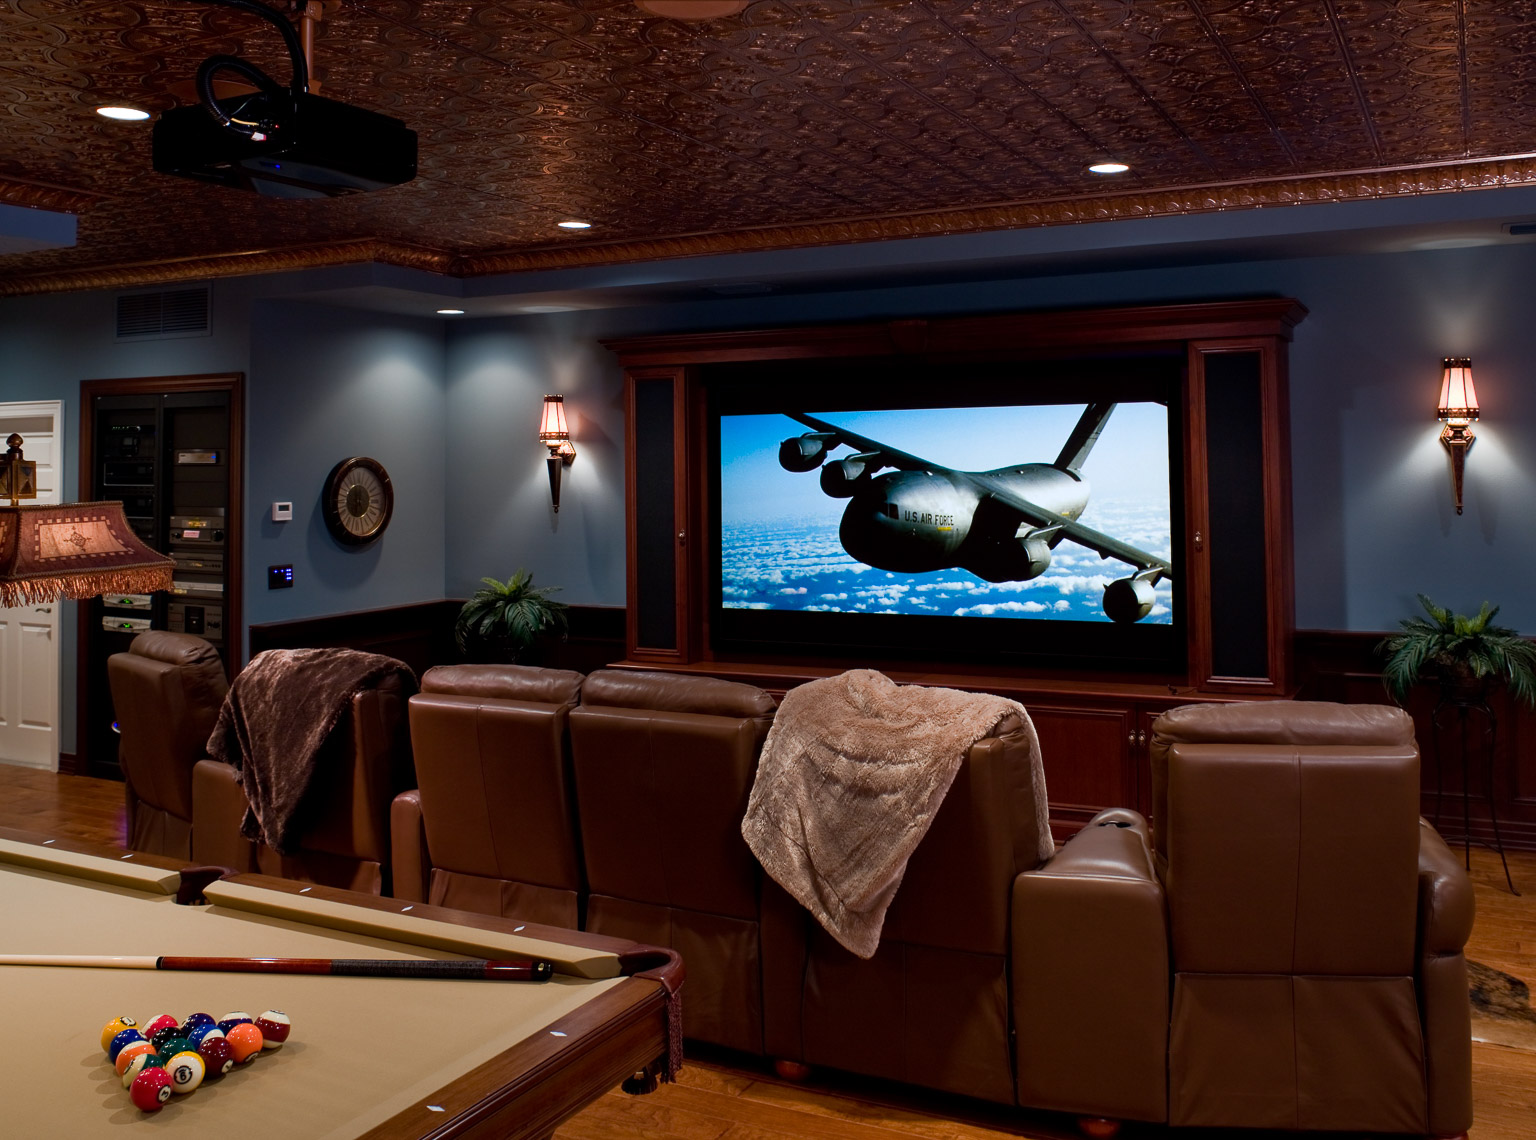 Contemporary Home Theater - Mark Borosch Photography - Sarasota, FL